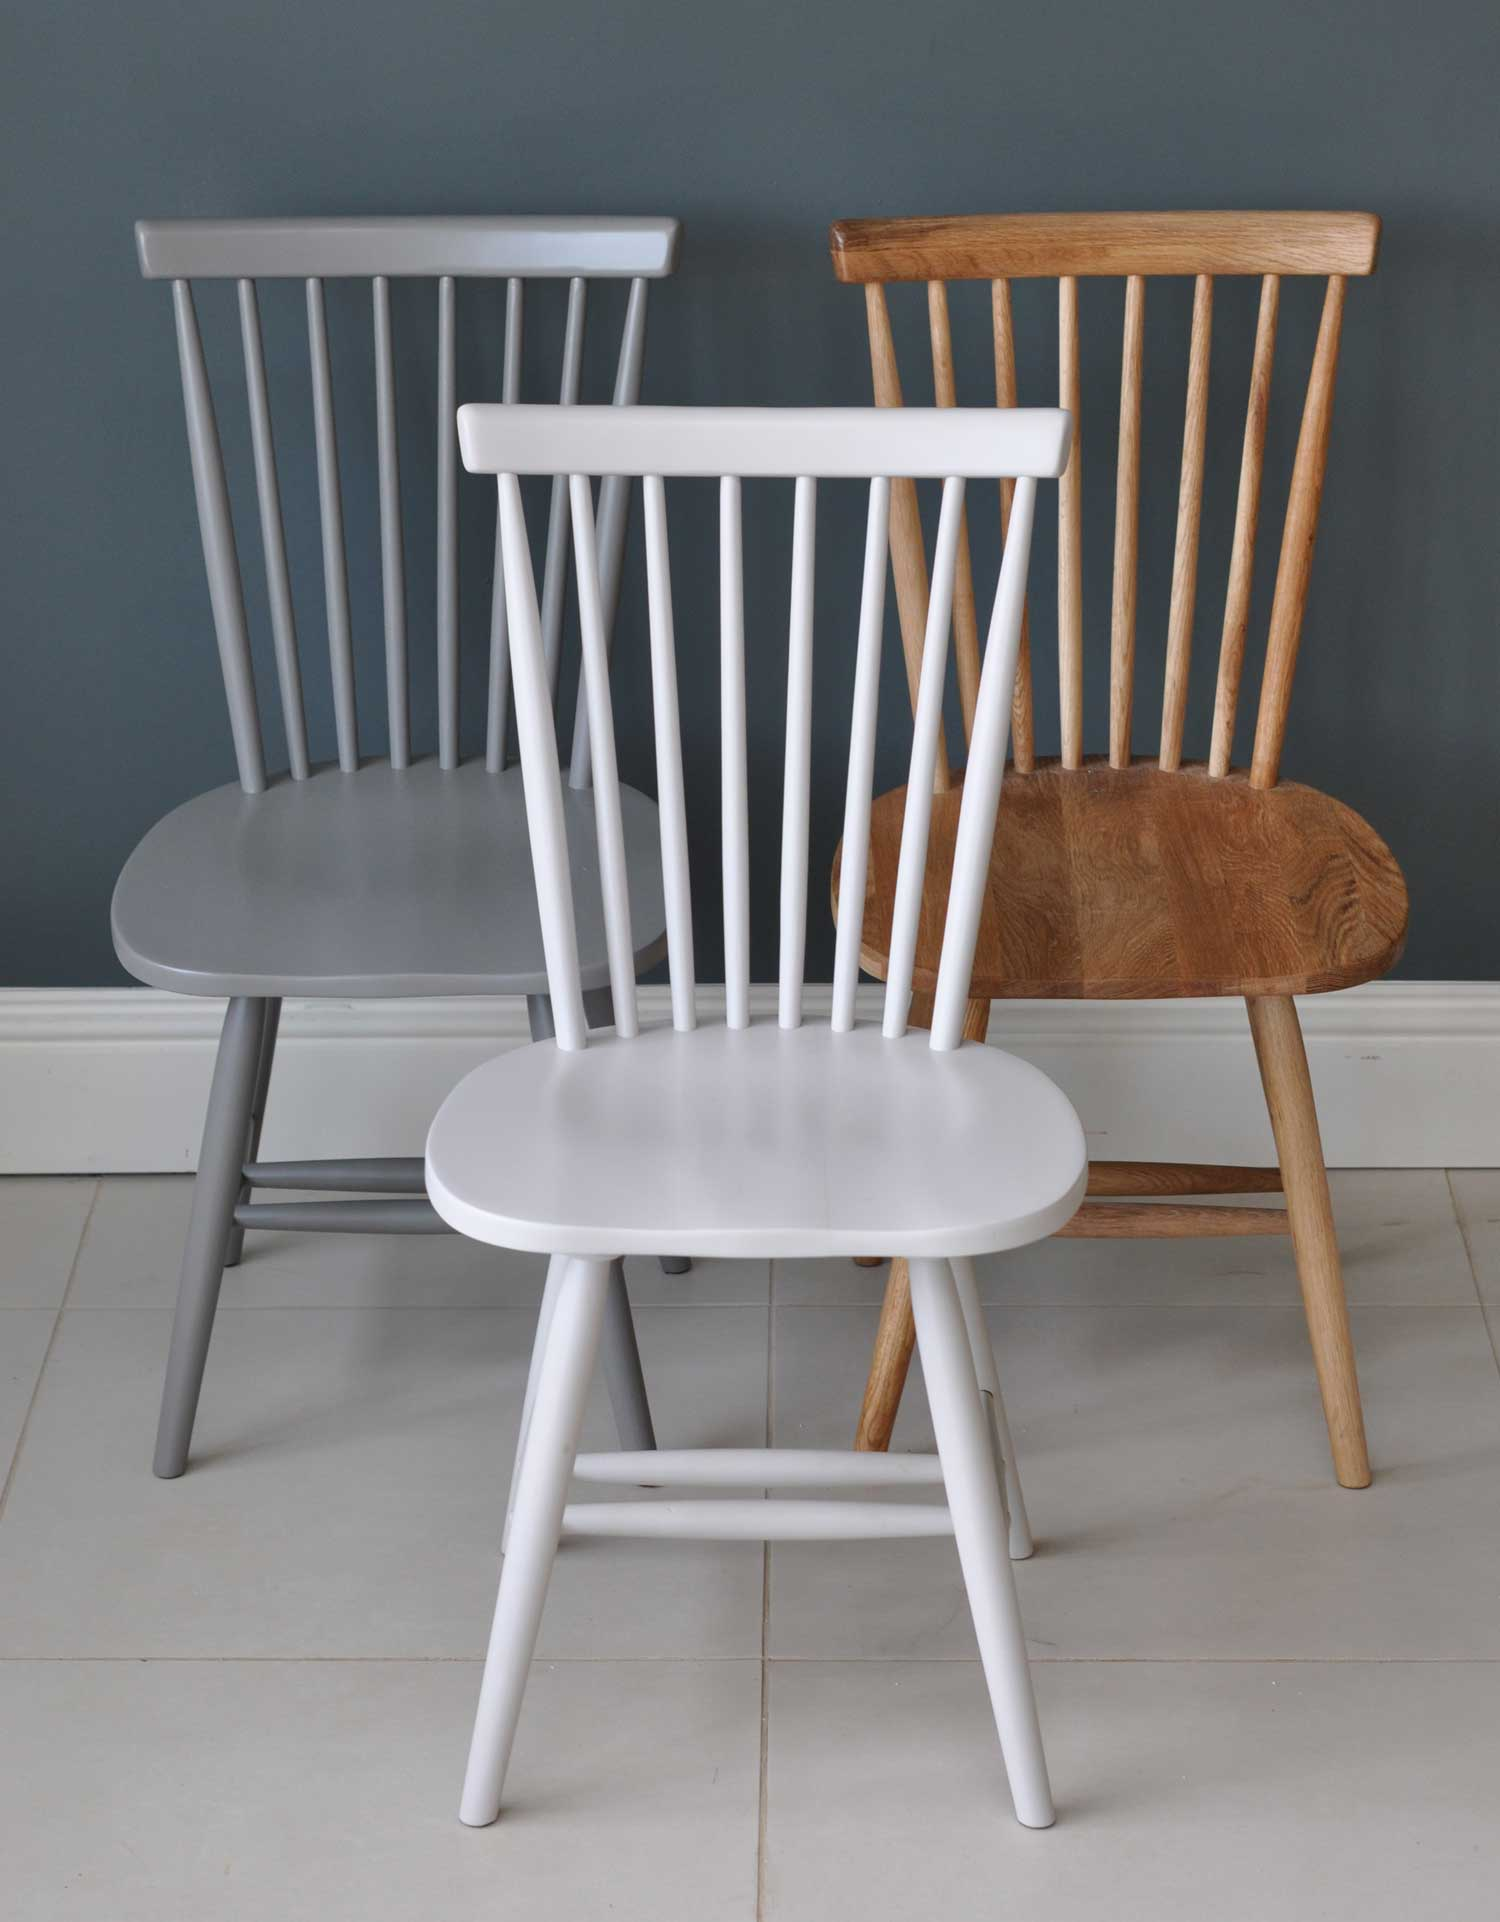 Painted or Oak Spindle Back Dining Chair